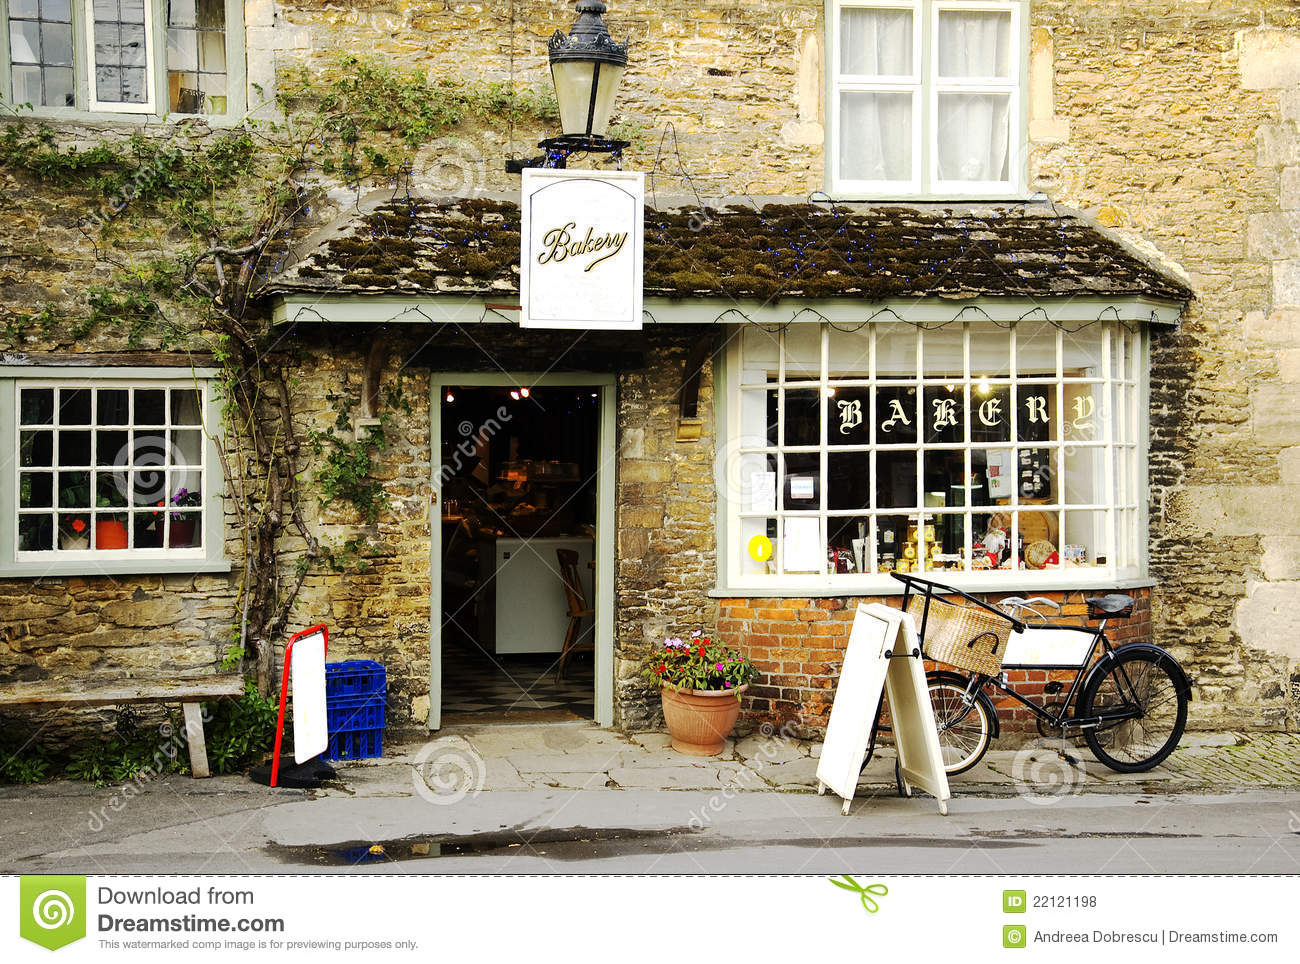 Royalty Free Stock Photos English Bakery Image22121198 on Old English Cottage Plans